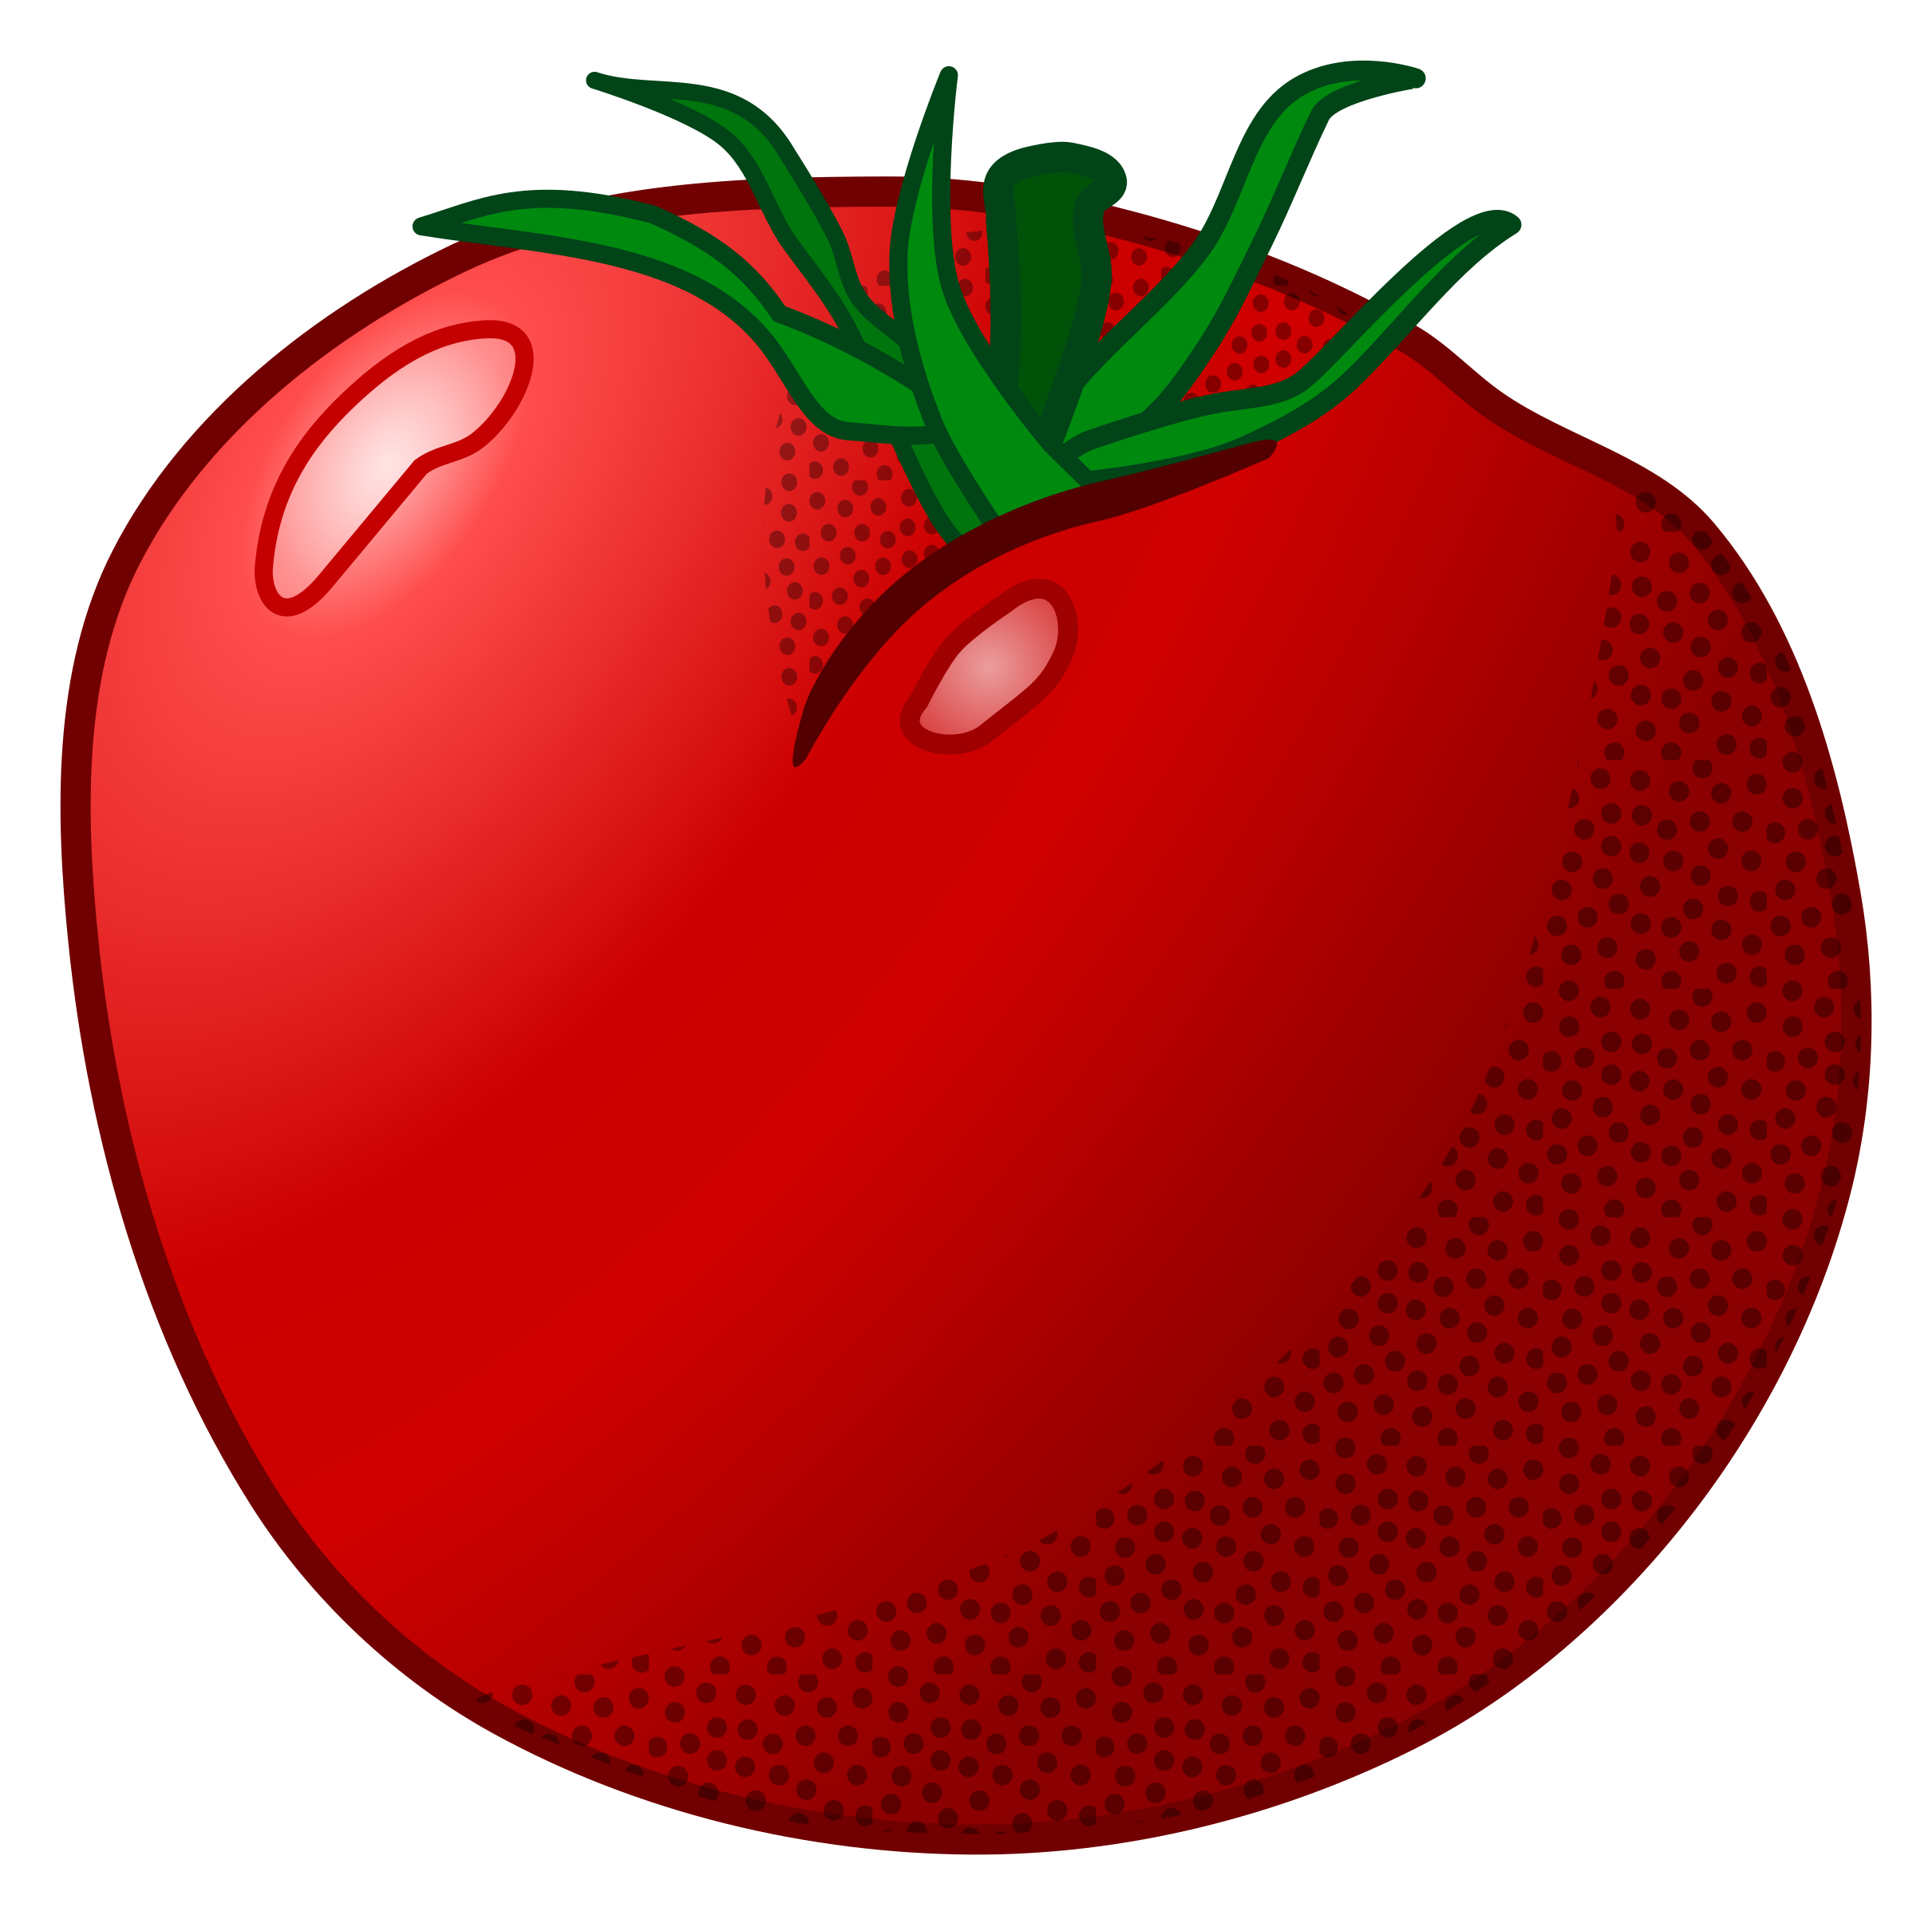 Tomatoes clip art free. Strawberries clipart vegatable